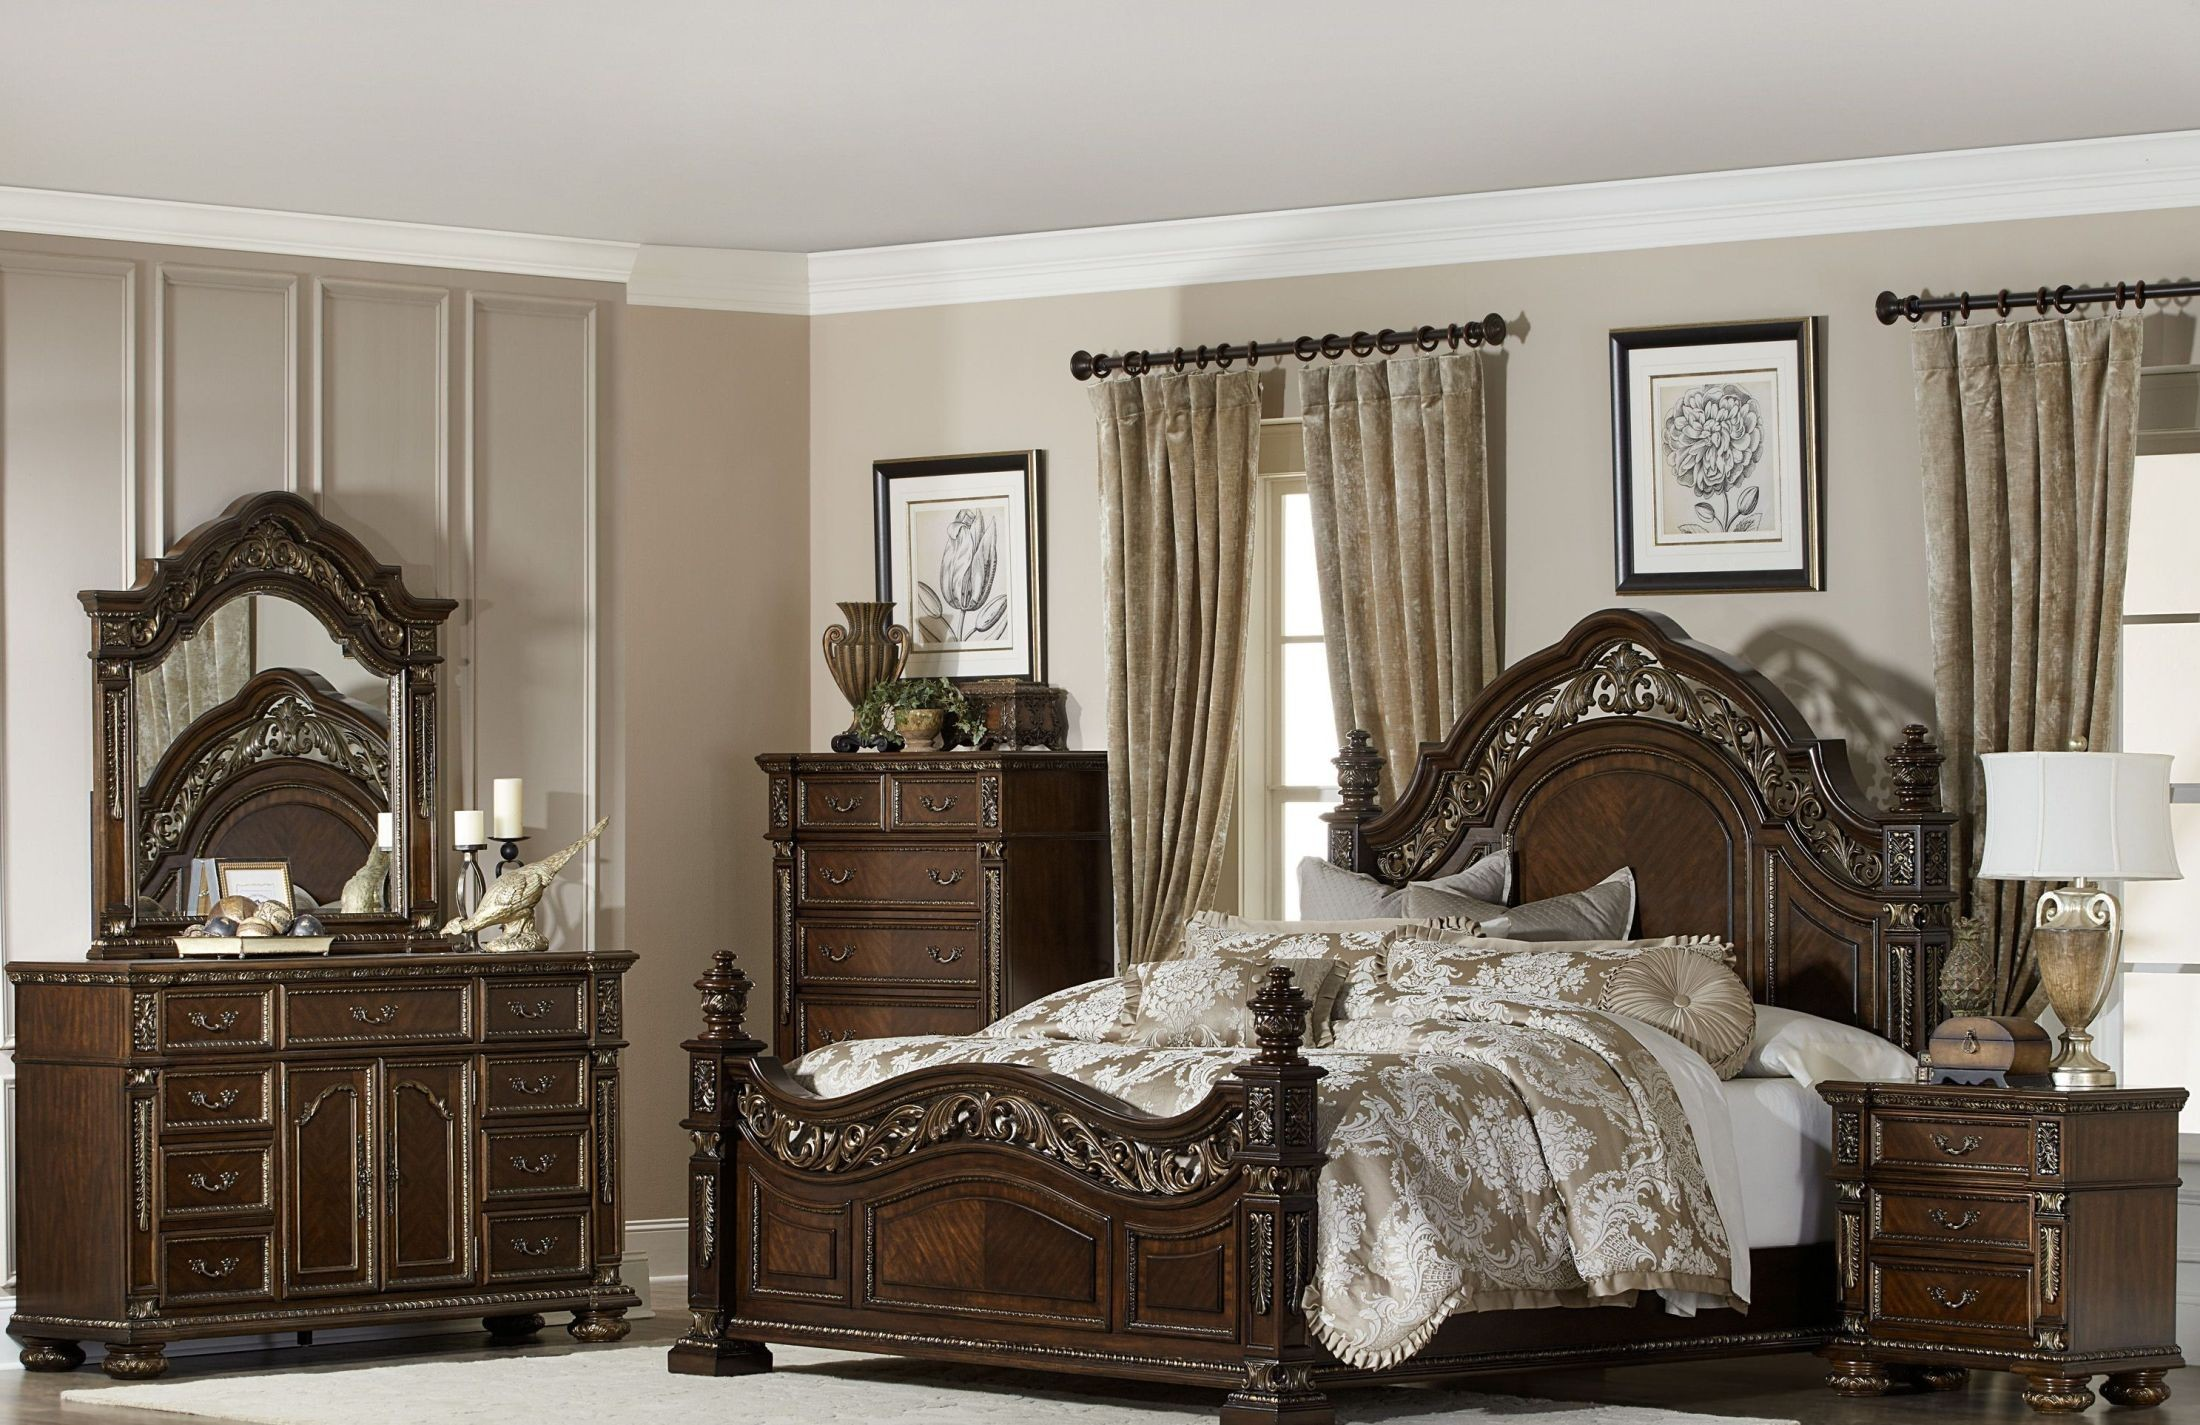 Catalonia Cherry Bedroom Set from Homelegance | Coleman Furniture